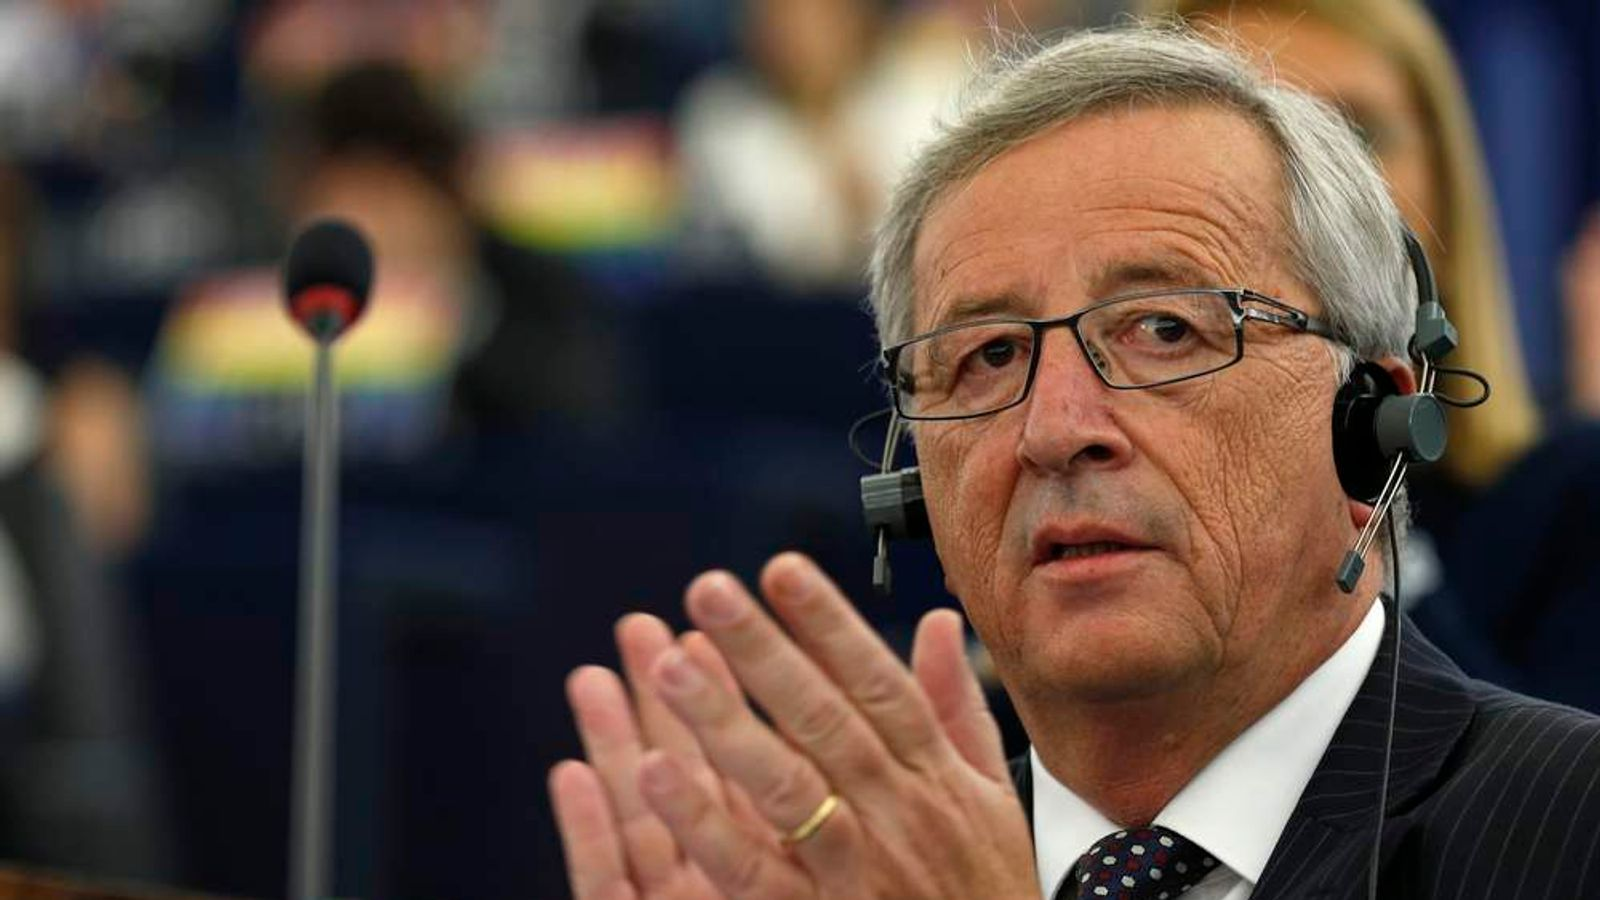 Designated president of the European Commission Juncker attends a debate on his election at the European Parliament in Strasbourg